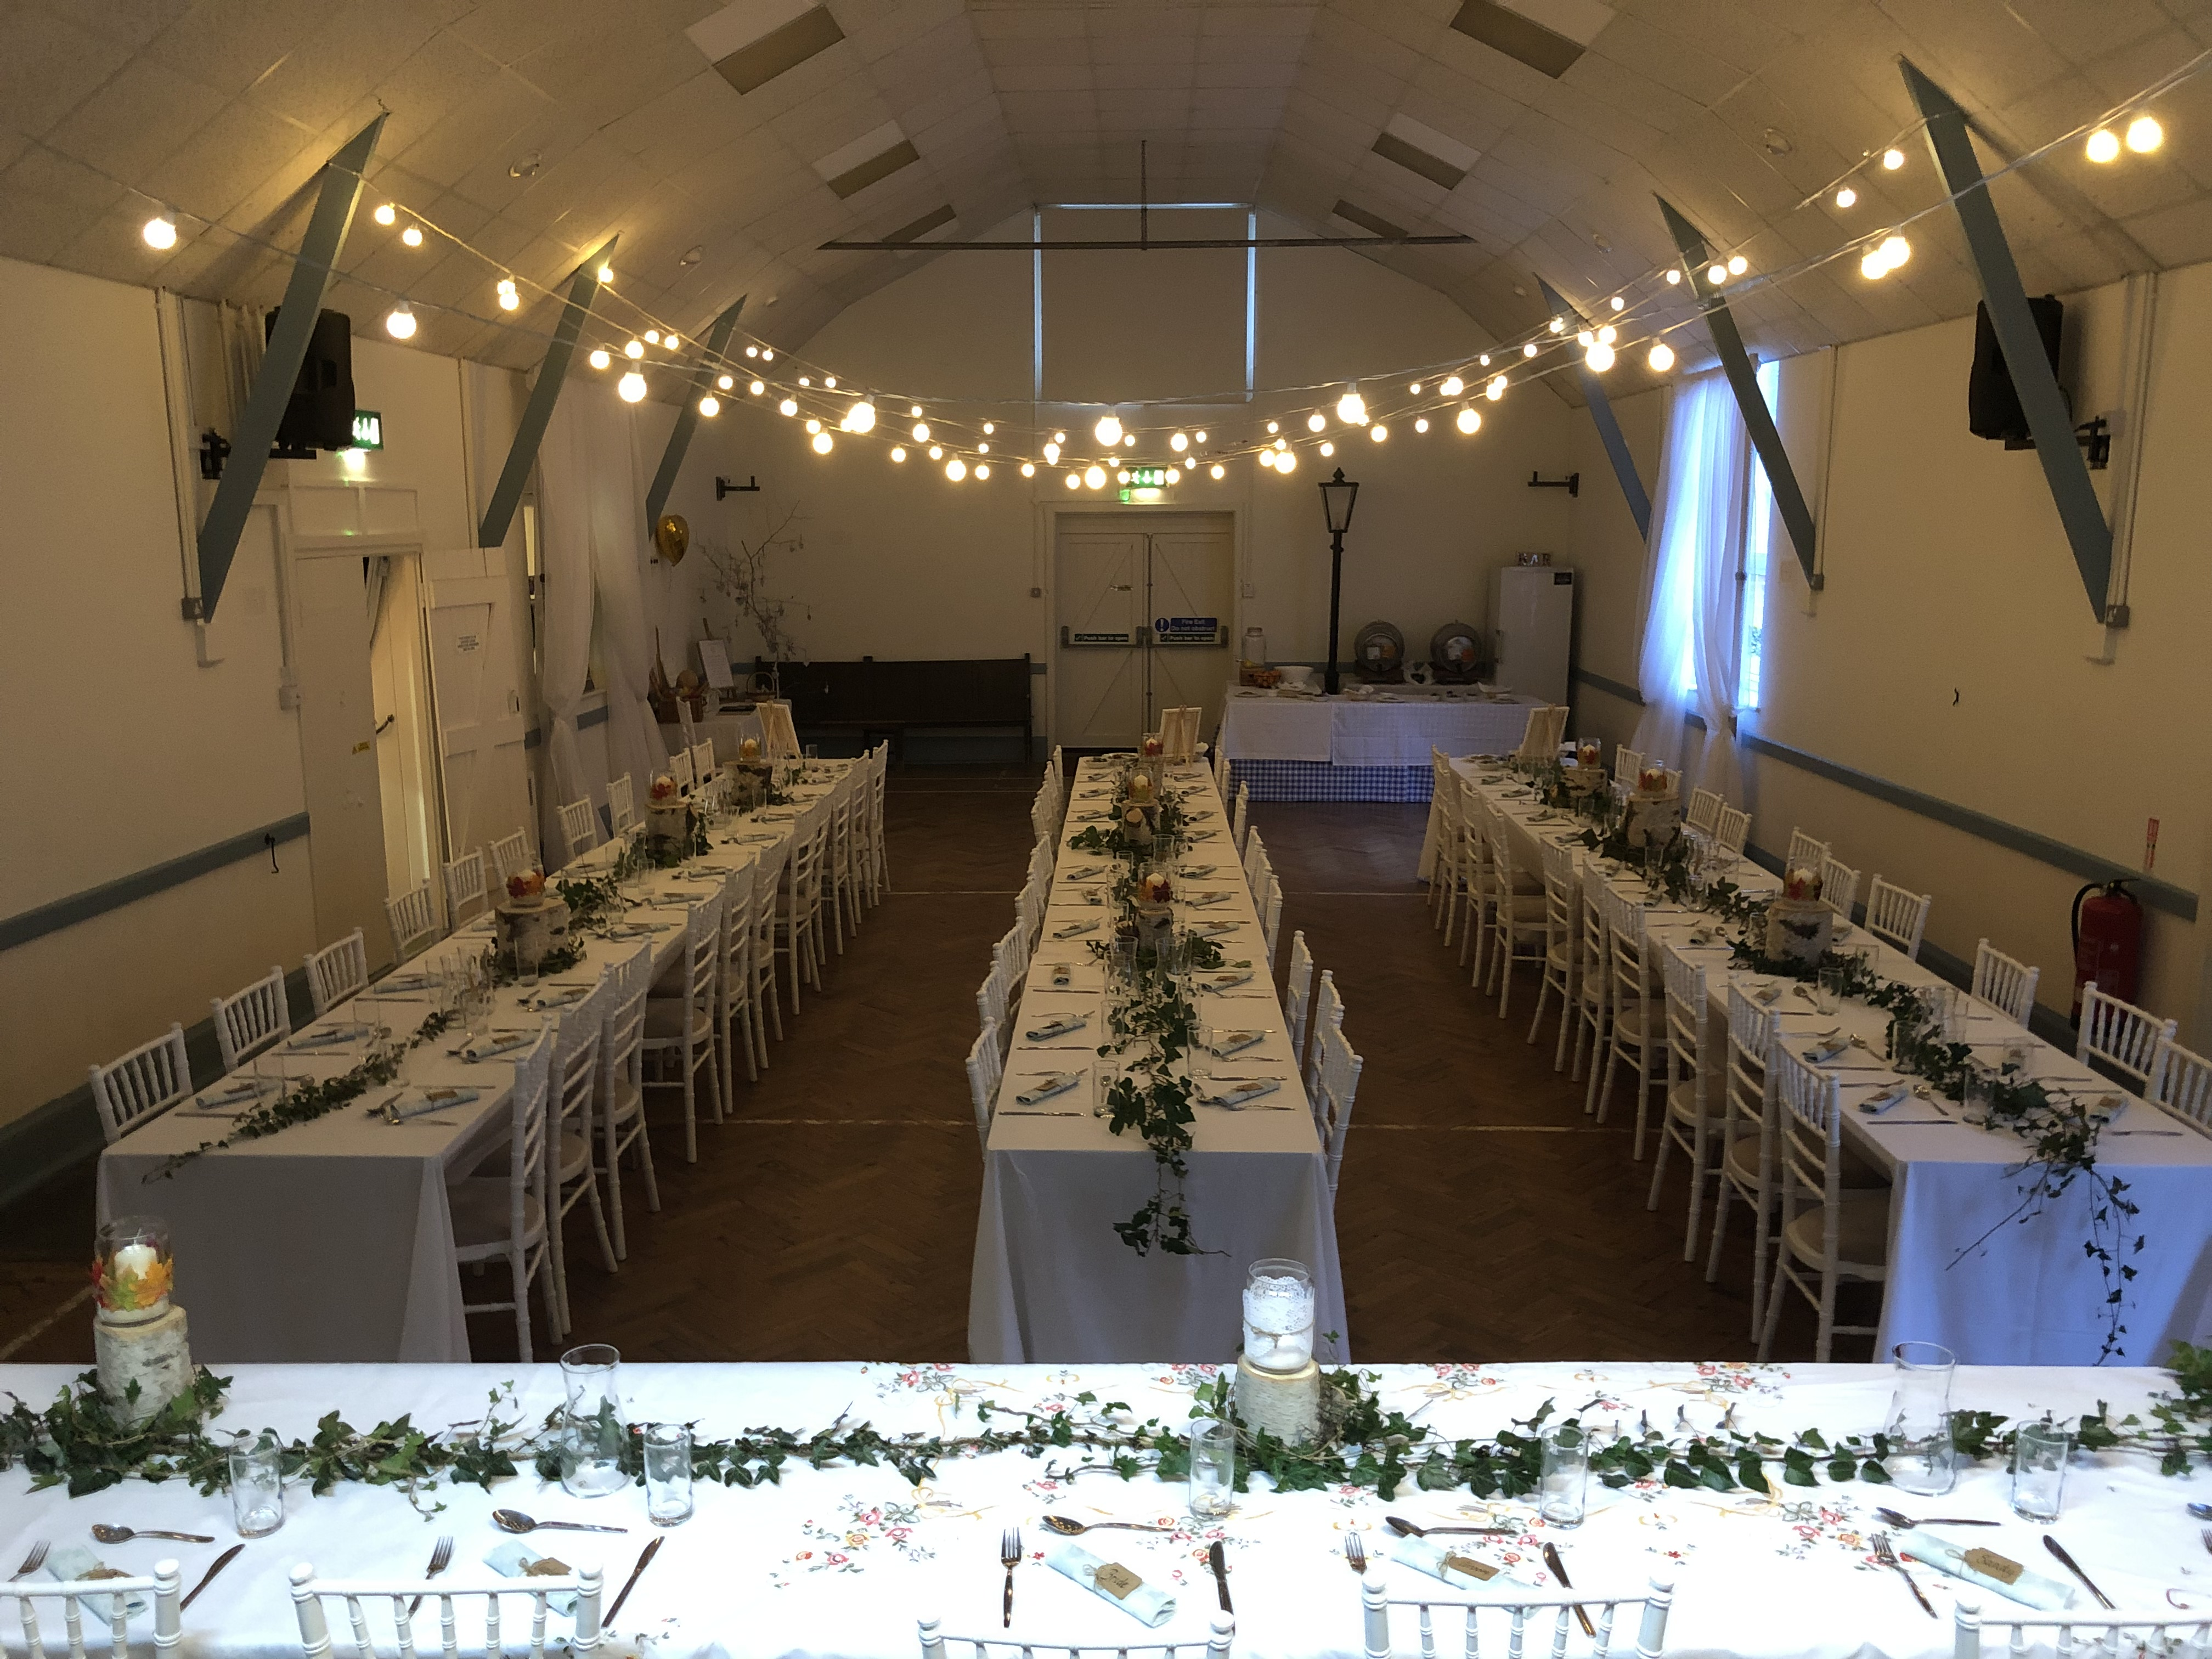 Hire the hall for a wedding!